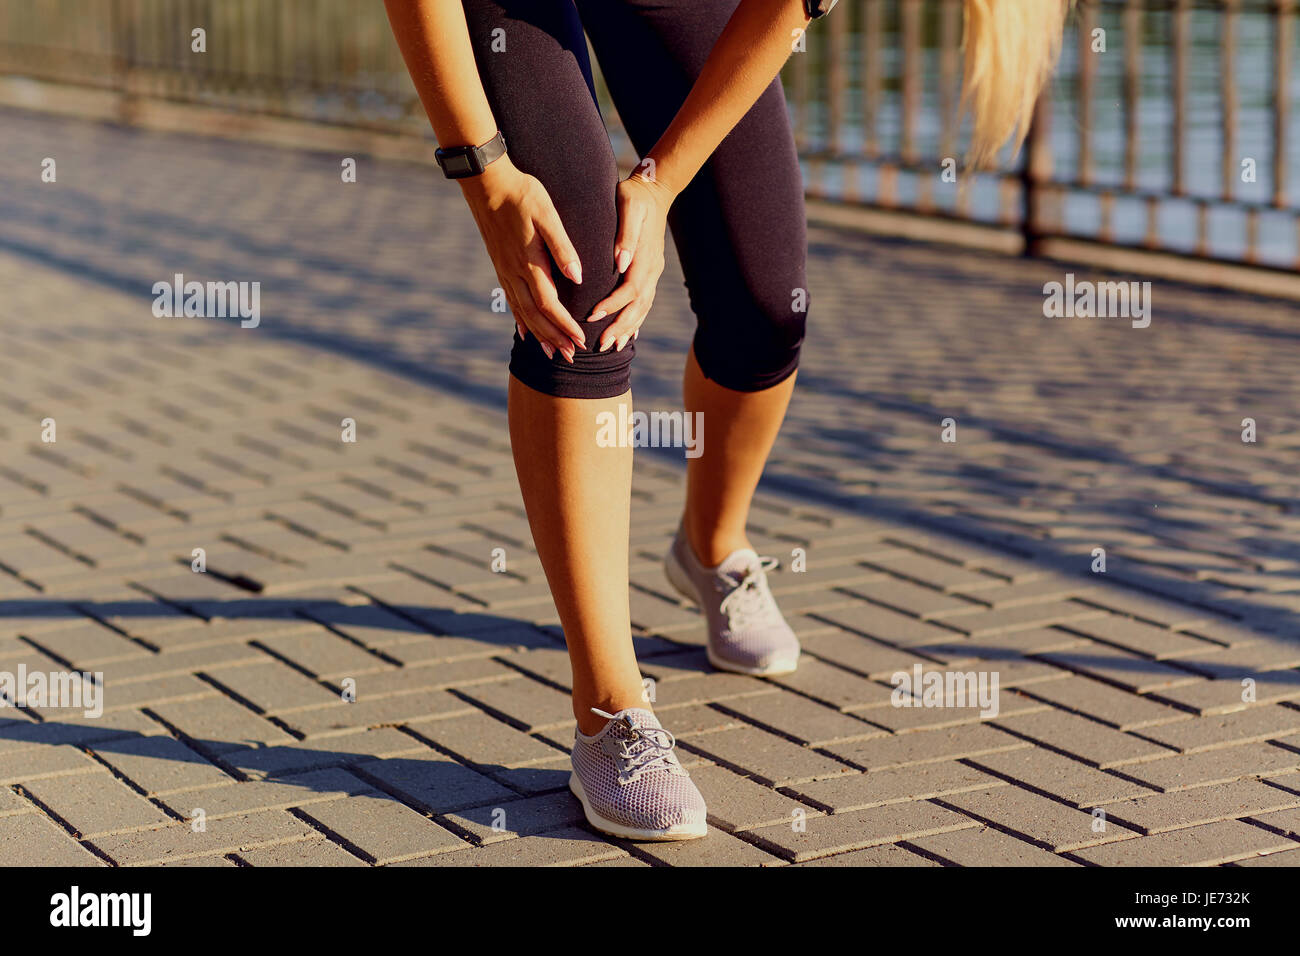 Injury of a knee on a run in a runner. - Stock Image